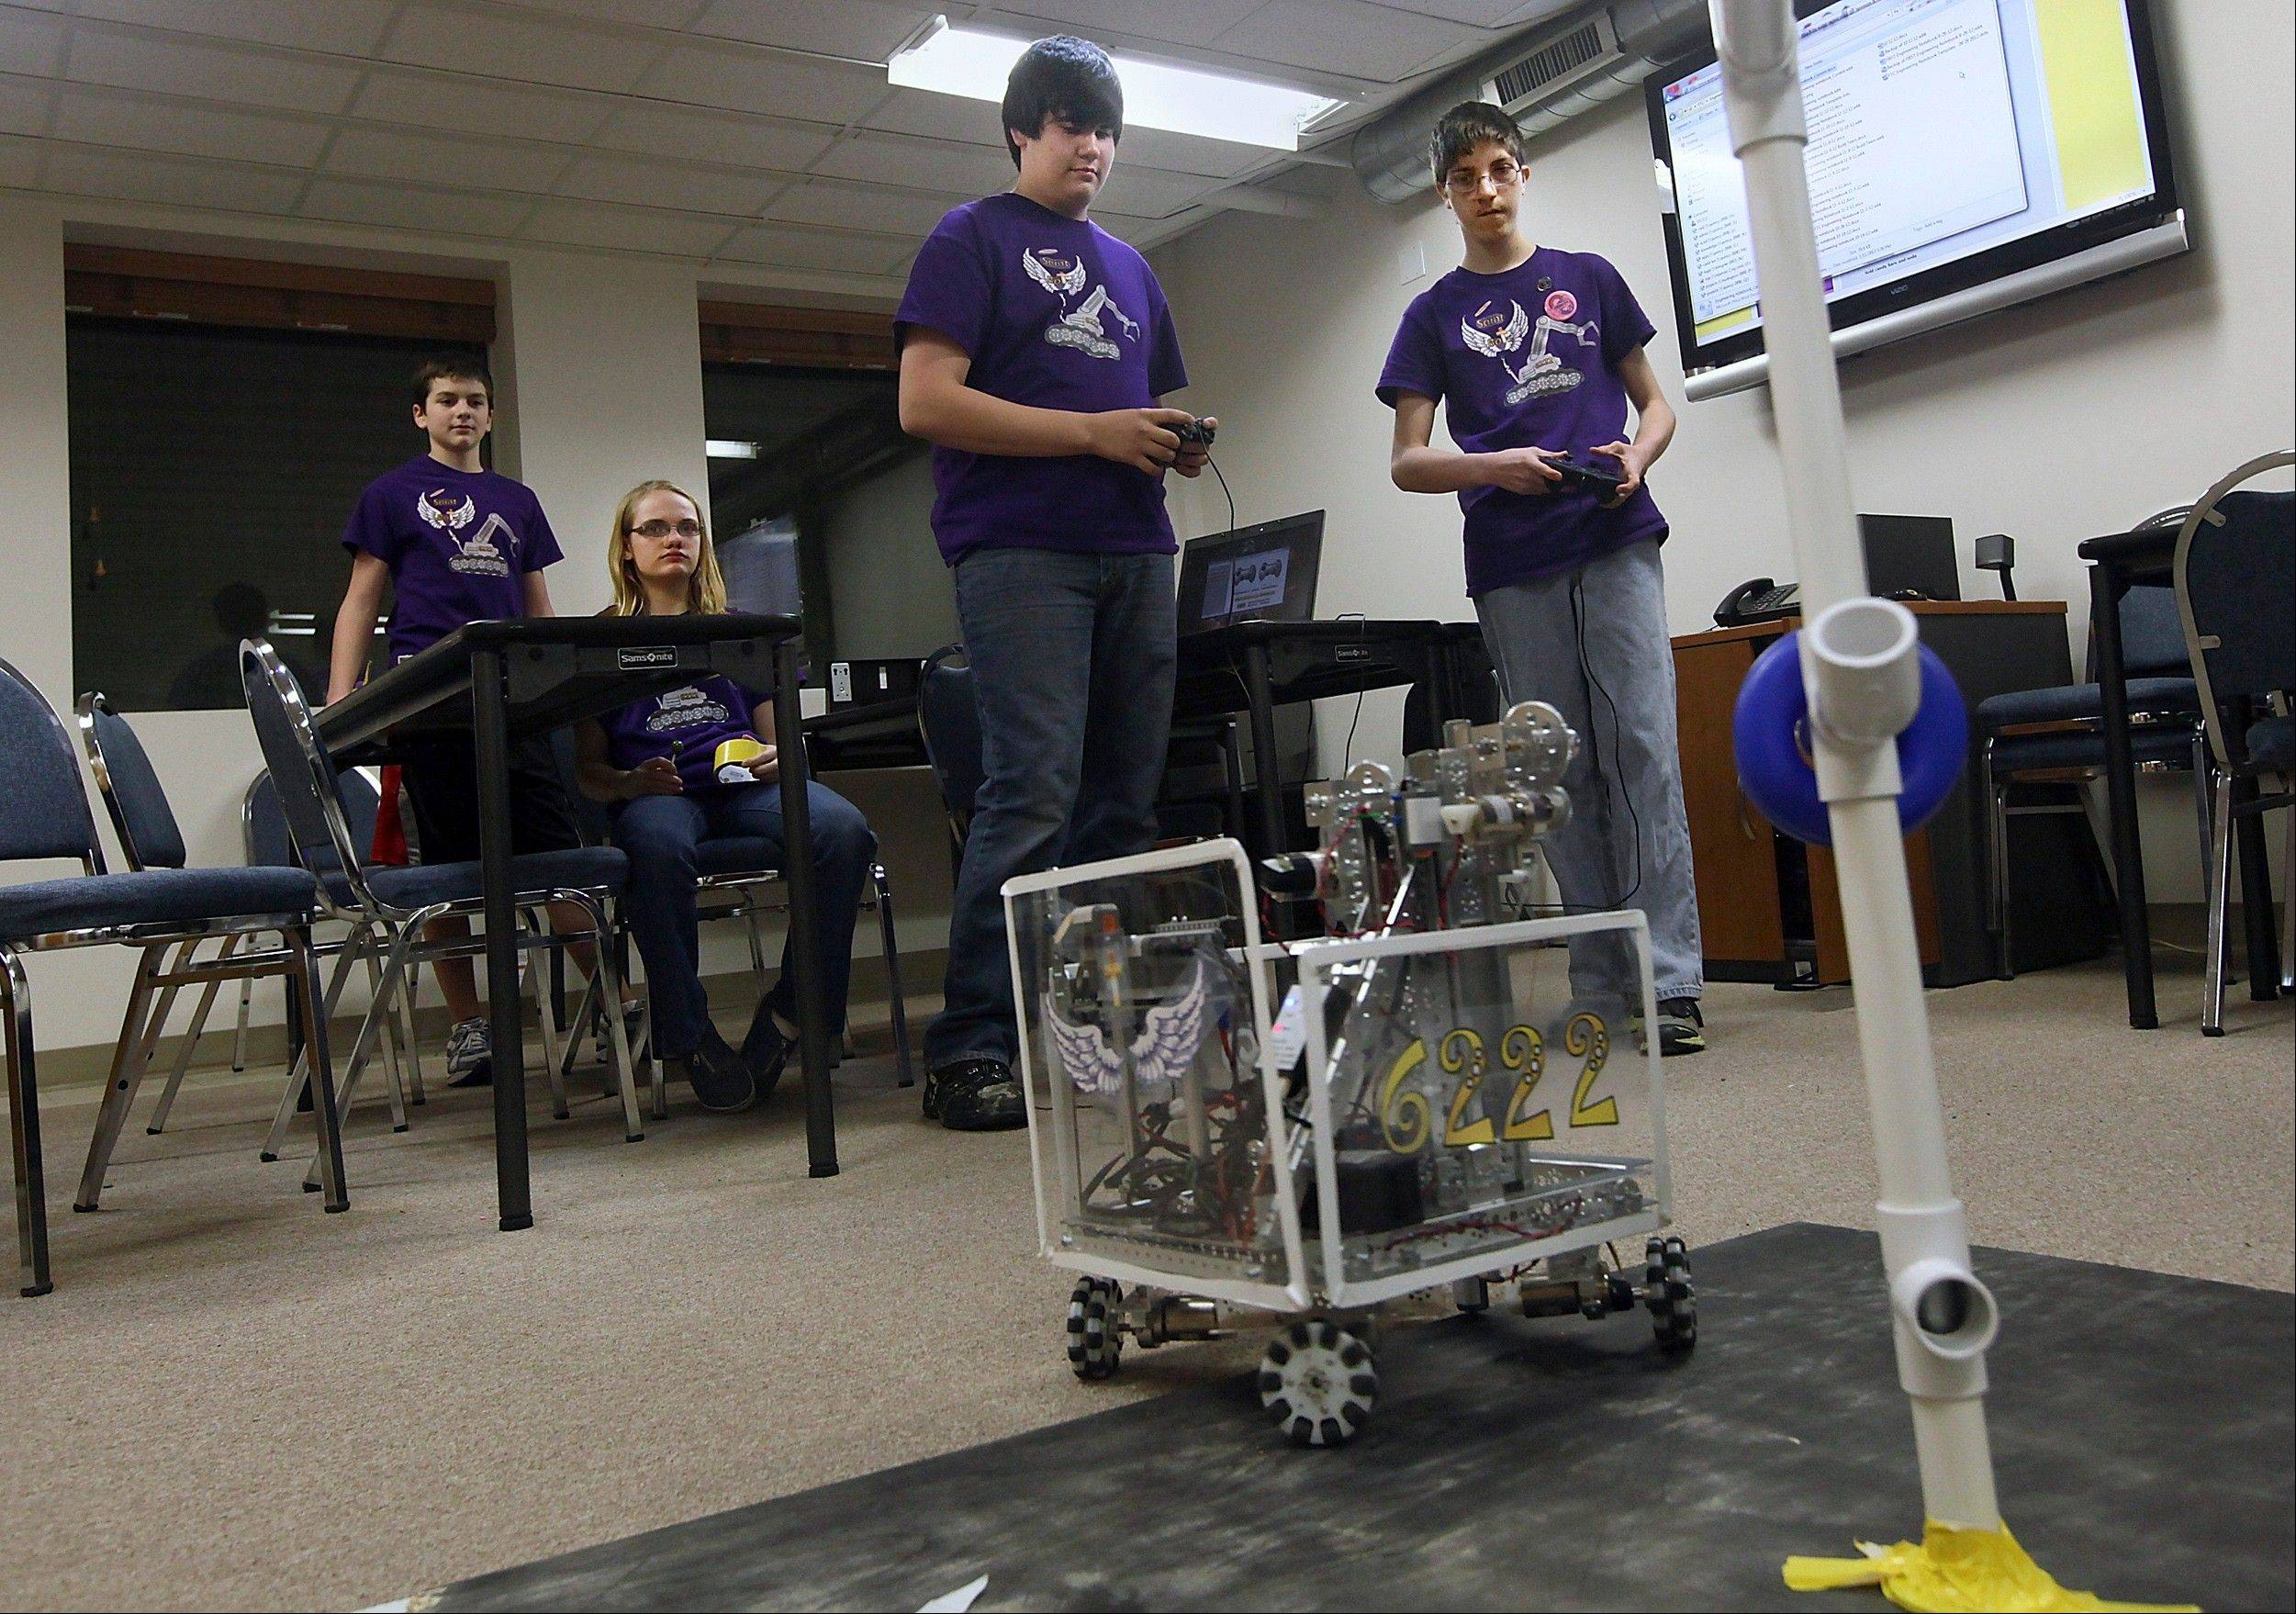 Associated Press Home-schooled students Andrew Lukens, center, and Joshua Wiley, right, operate a robot with game controllers as they try to get rings off one side of the pole and move the robot around the pole and replace the rings on the opposite side in Quincy.